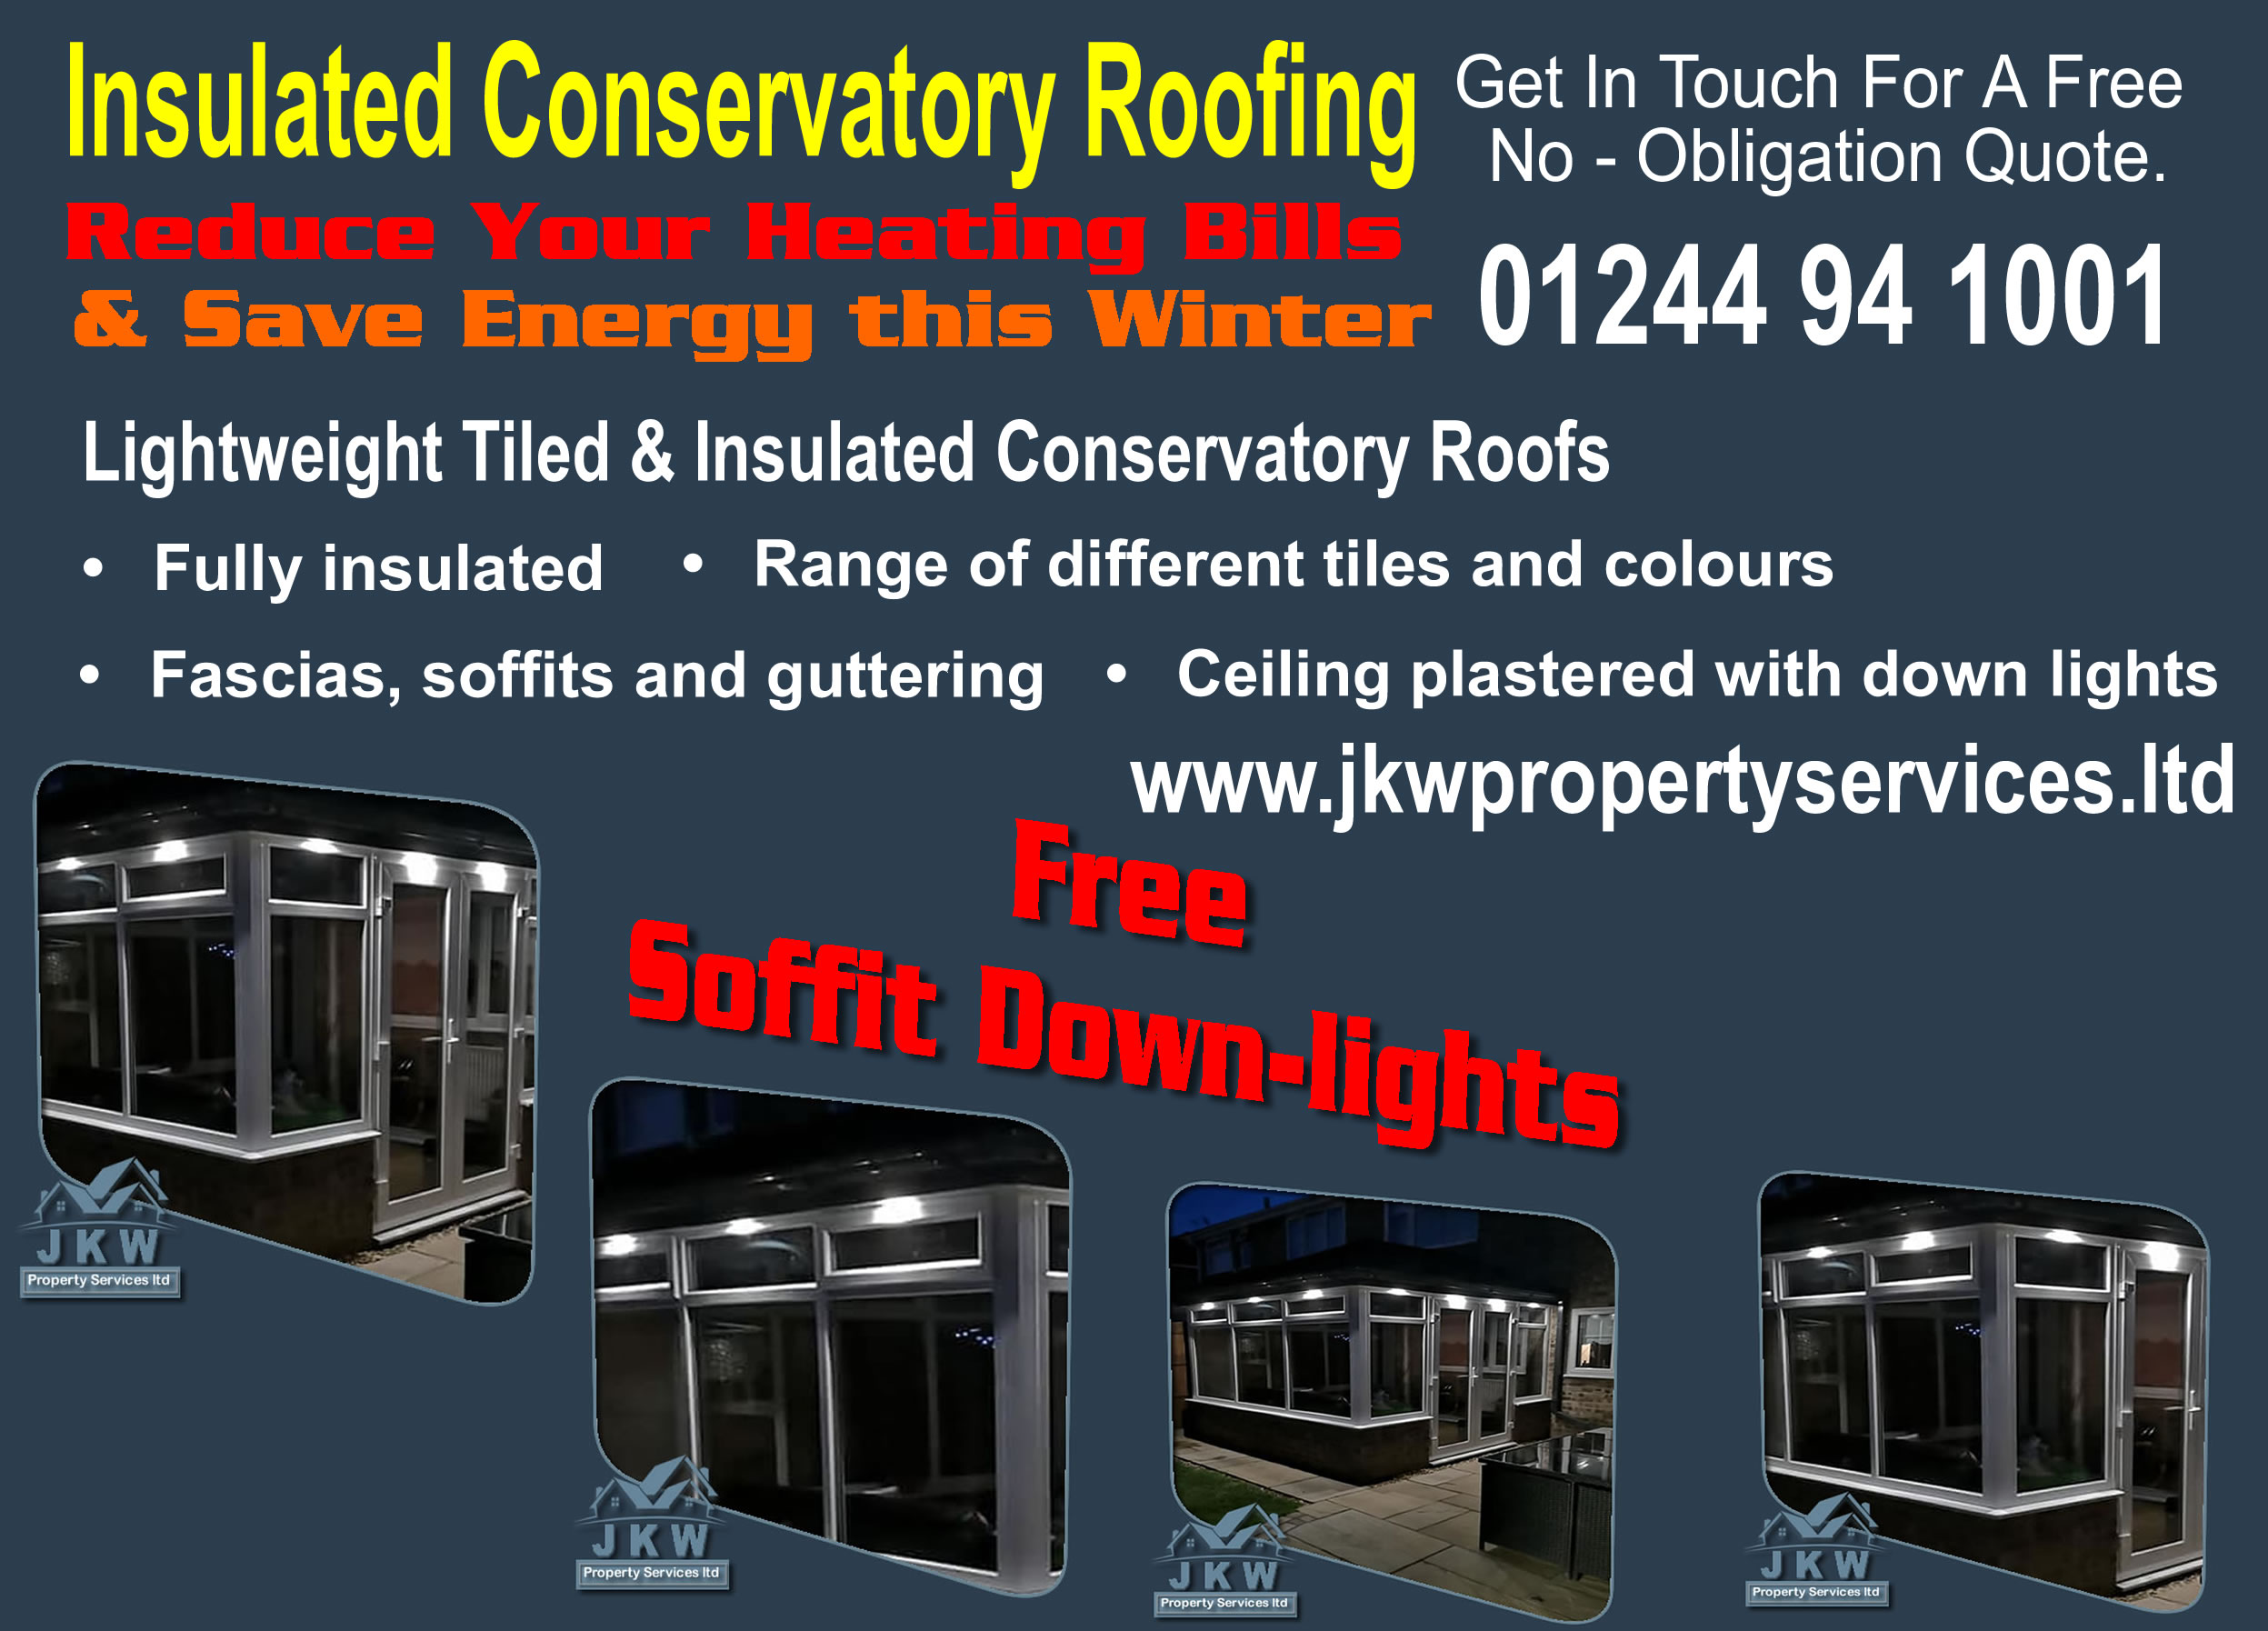 Low Cost Warm Conservatory Roofing in Ellesmere Port